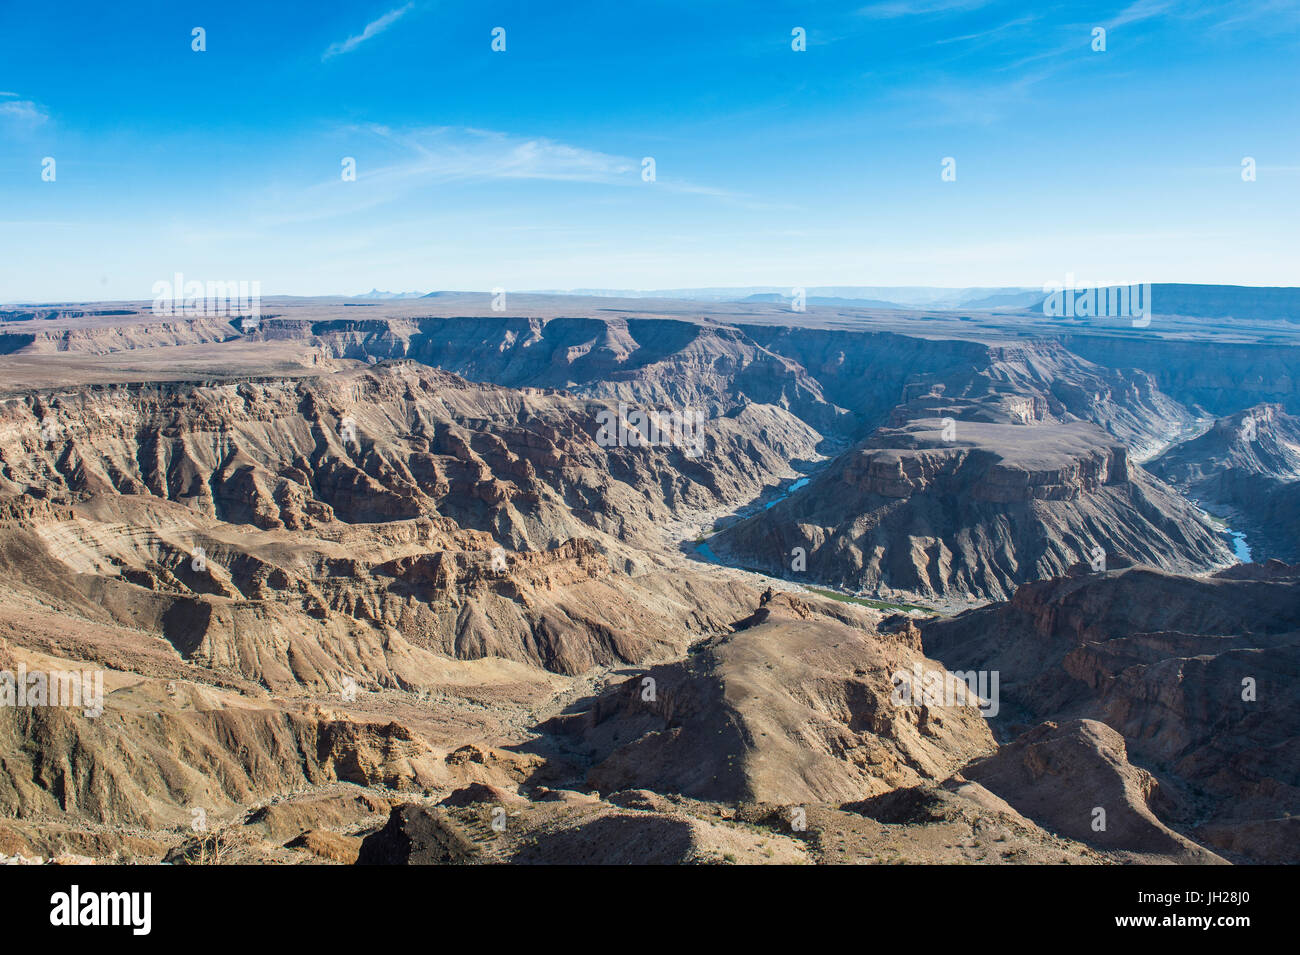 View over the Fish River Canyon, Namibia, Africa - Stock Image